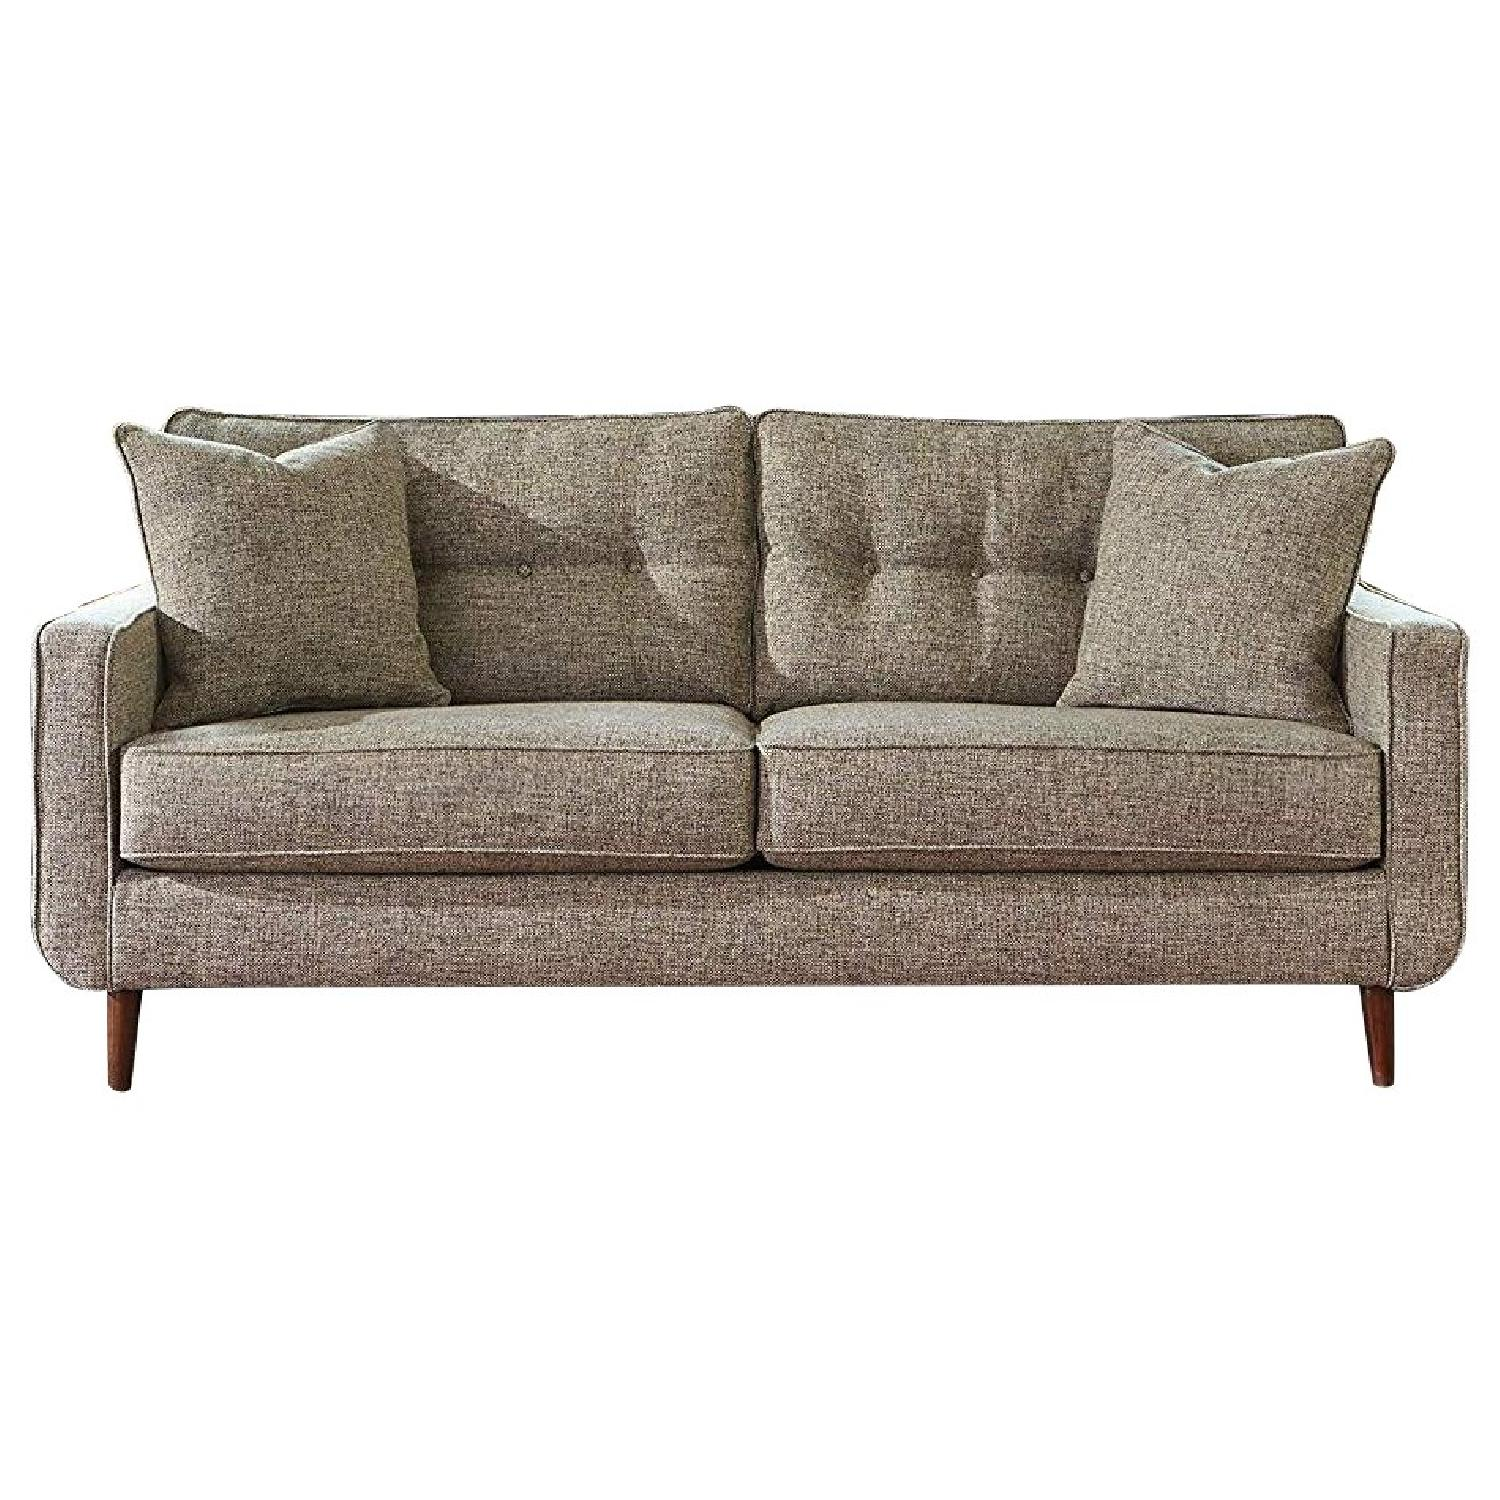 Ashley Chento Jute Sofa in Beige/Natural - image-0